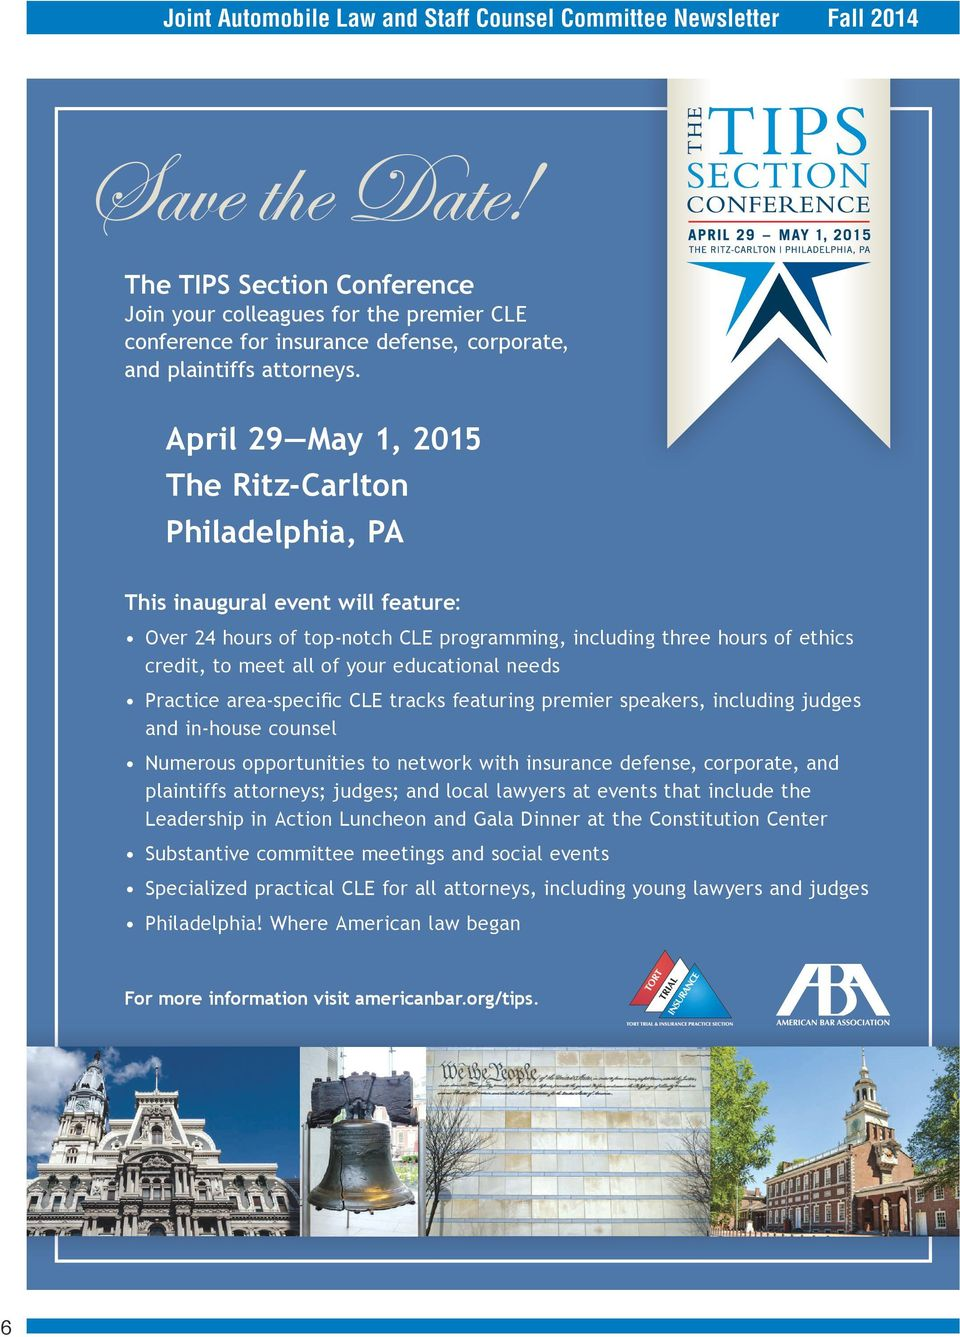 April 29 May 1, 2015 The Ritz-Carlton Philadelphia, PA This inaugural event will feature: Over 24 hours of top-notch CLE programming, including three hours of ethics credit, to meet all of your